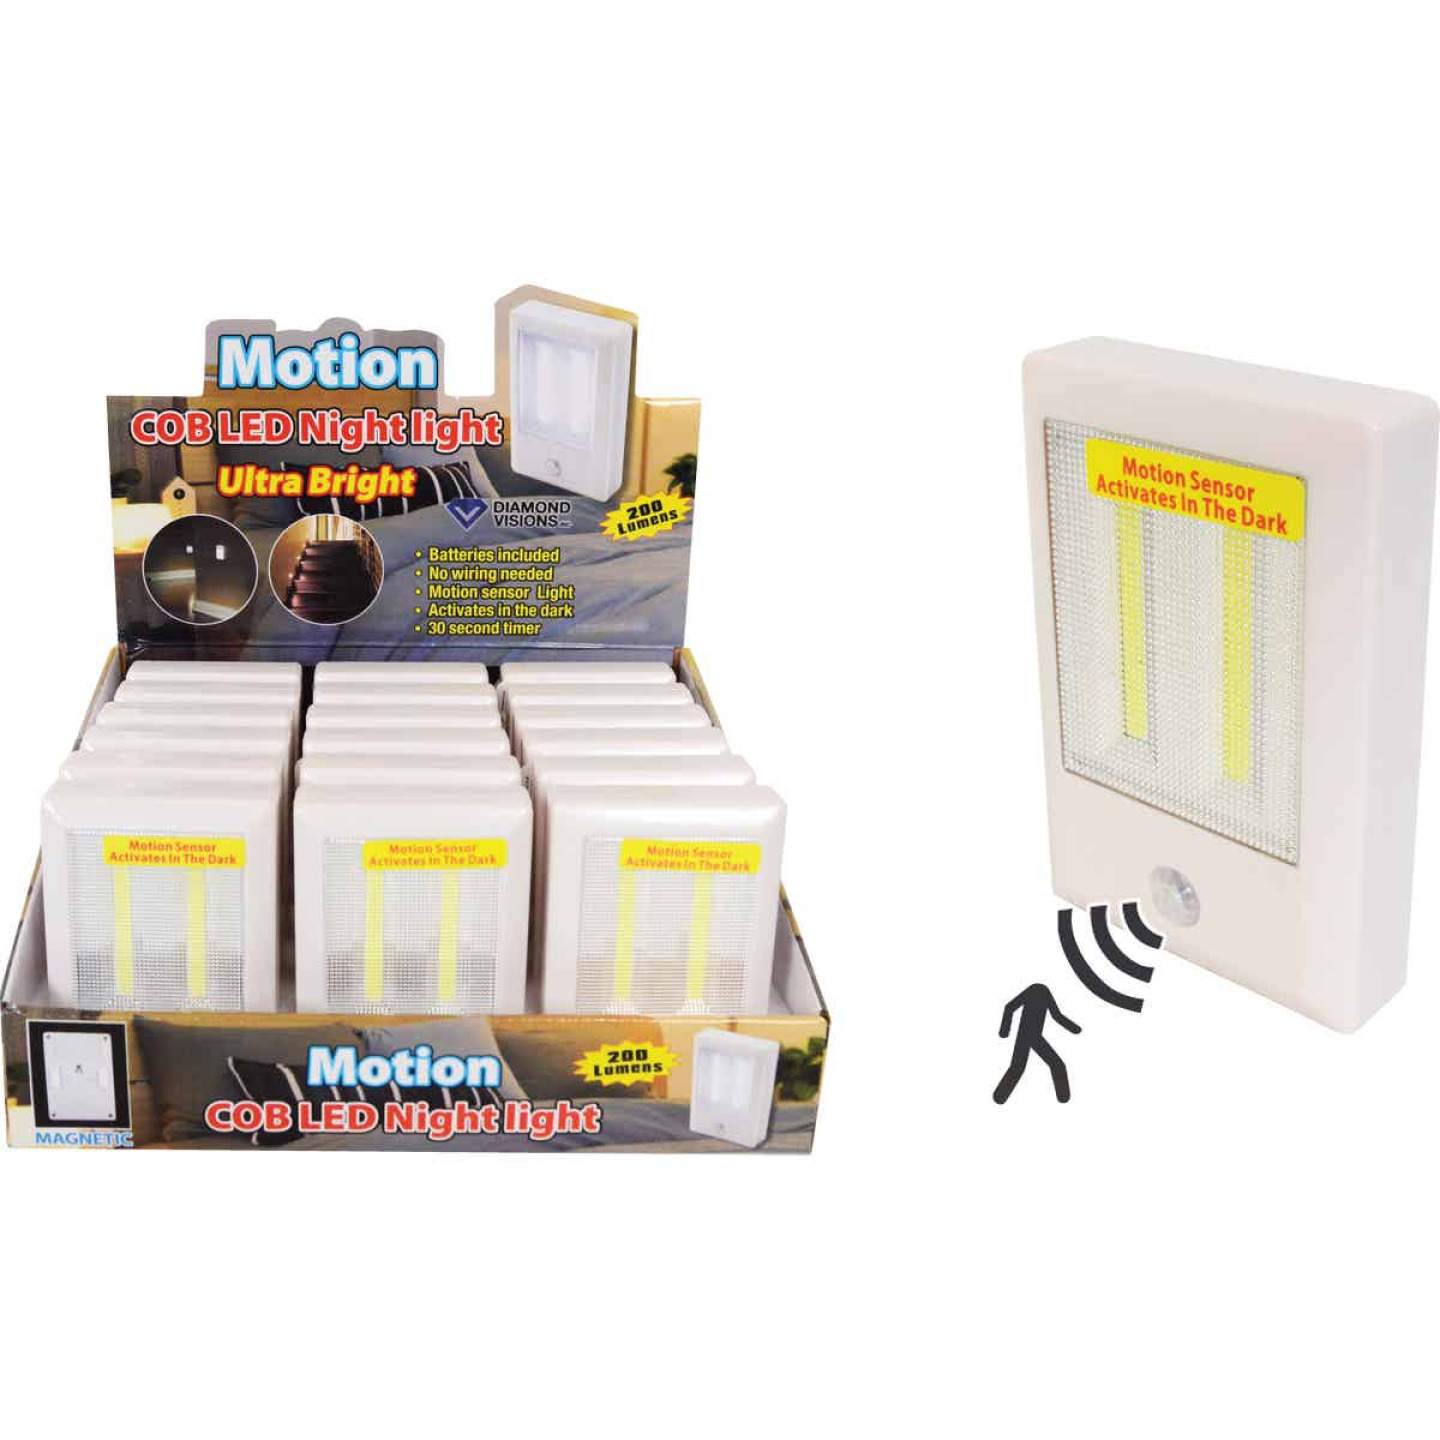 Diamond Visions White Battery Operated Motion Activated COB LED Night Light Image 1